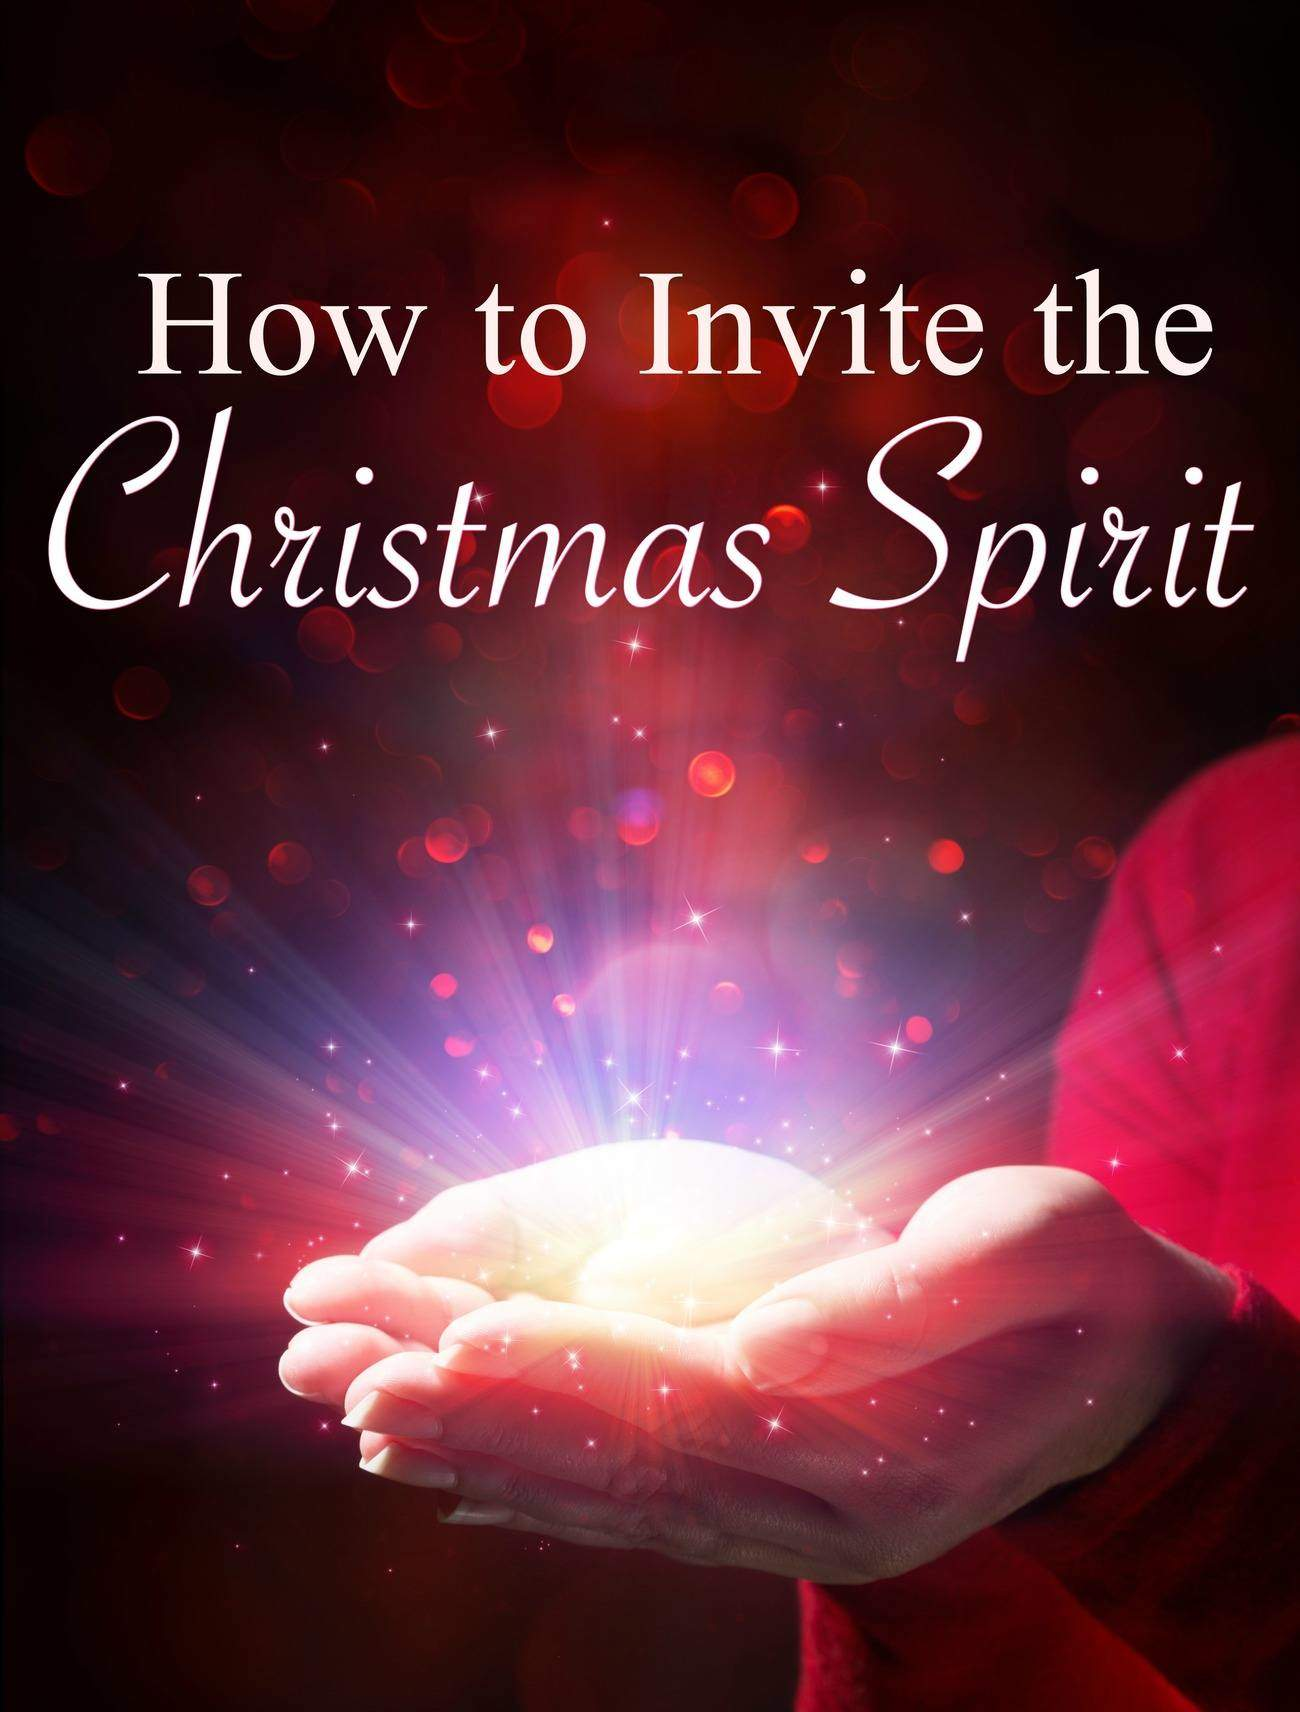 This Holiday season, don't get caught up in the material. Discover how to Invite the Christmas Spirit into your home and family and Light the World